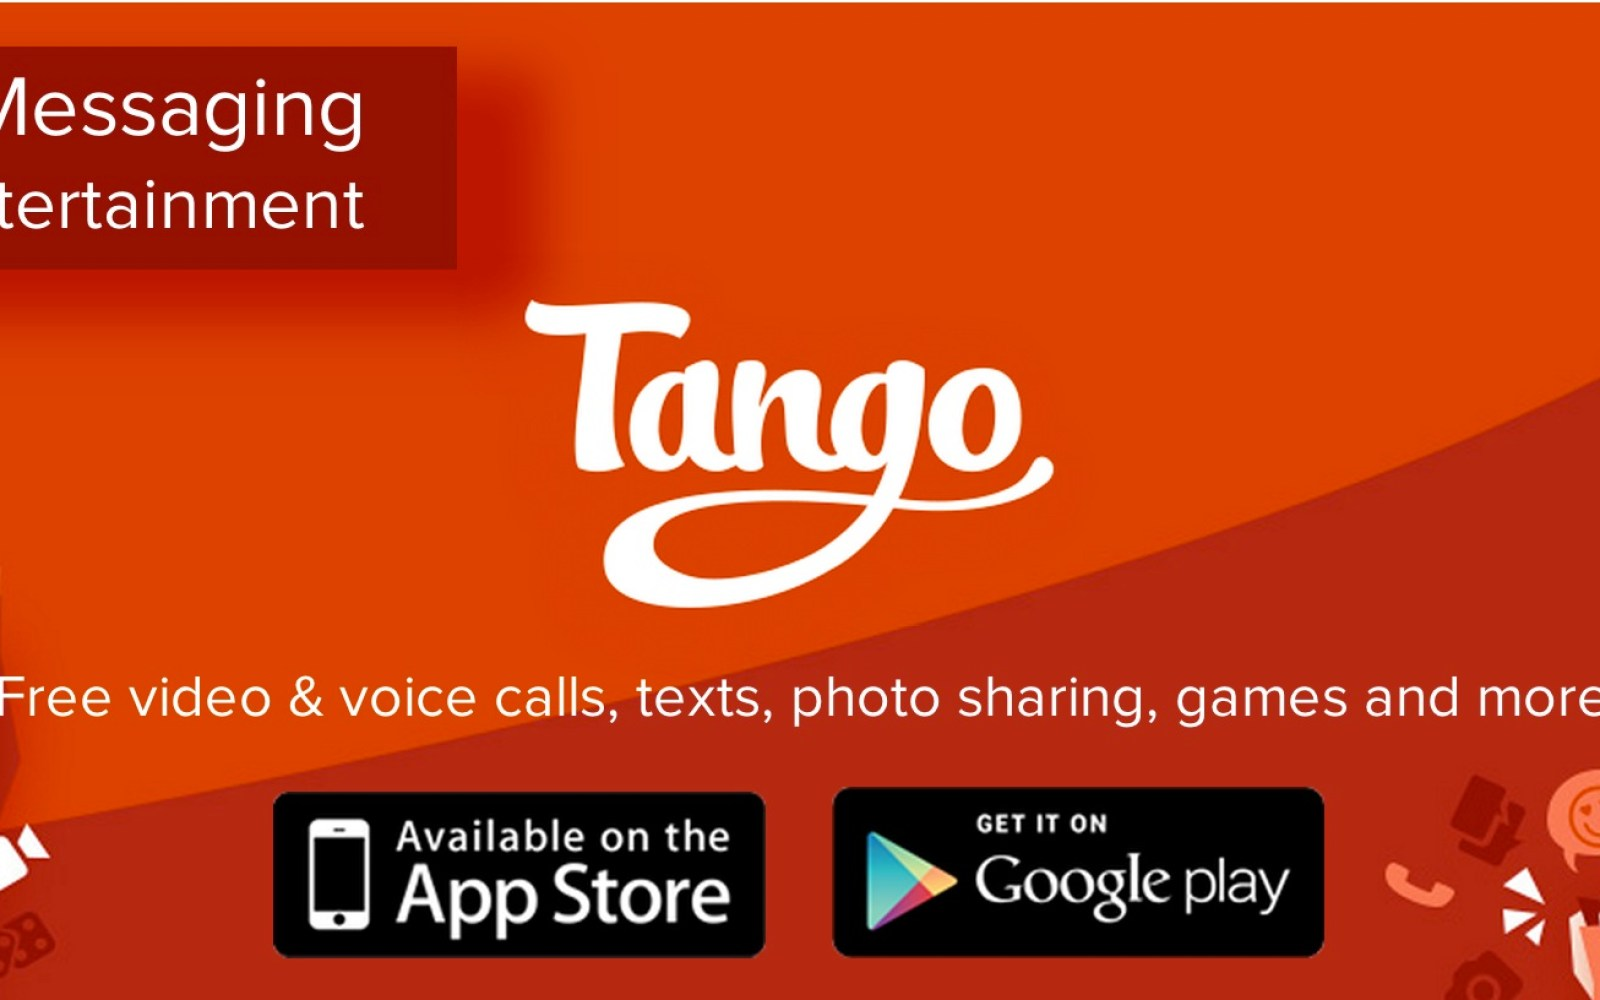 Tango launches SDK to become the social layer of apps and games